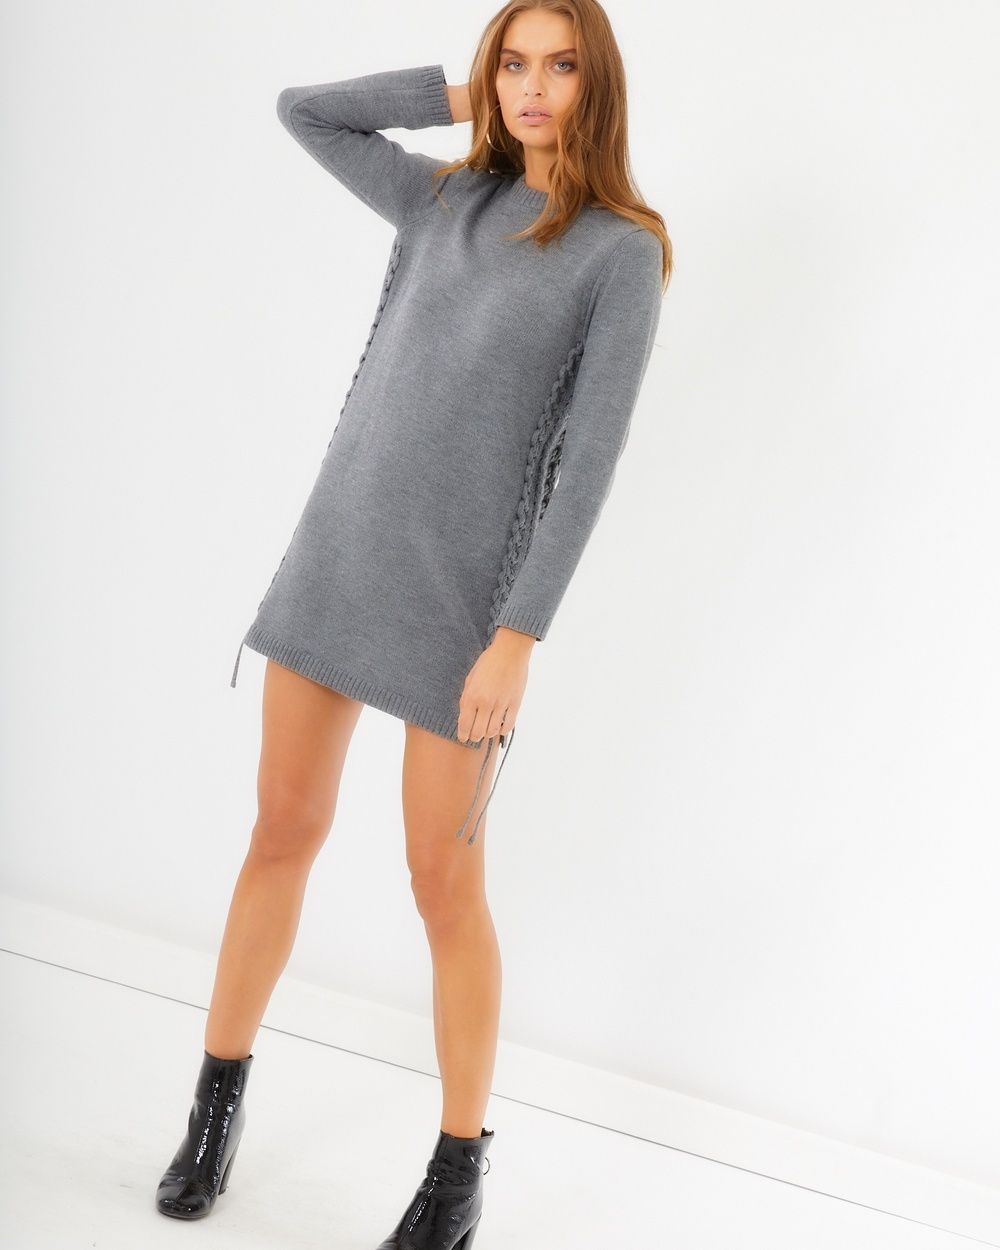 Photo of Tussah Grey Lula Knit Dress - beautiful dress from Tussah online